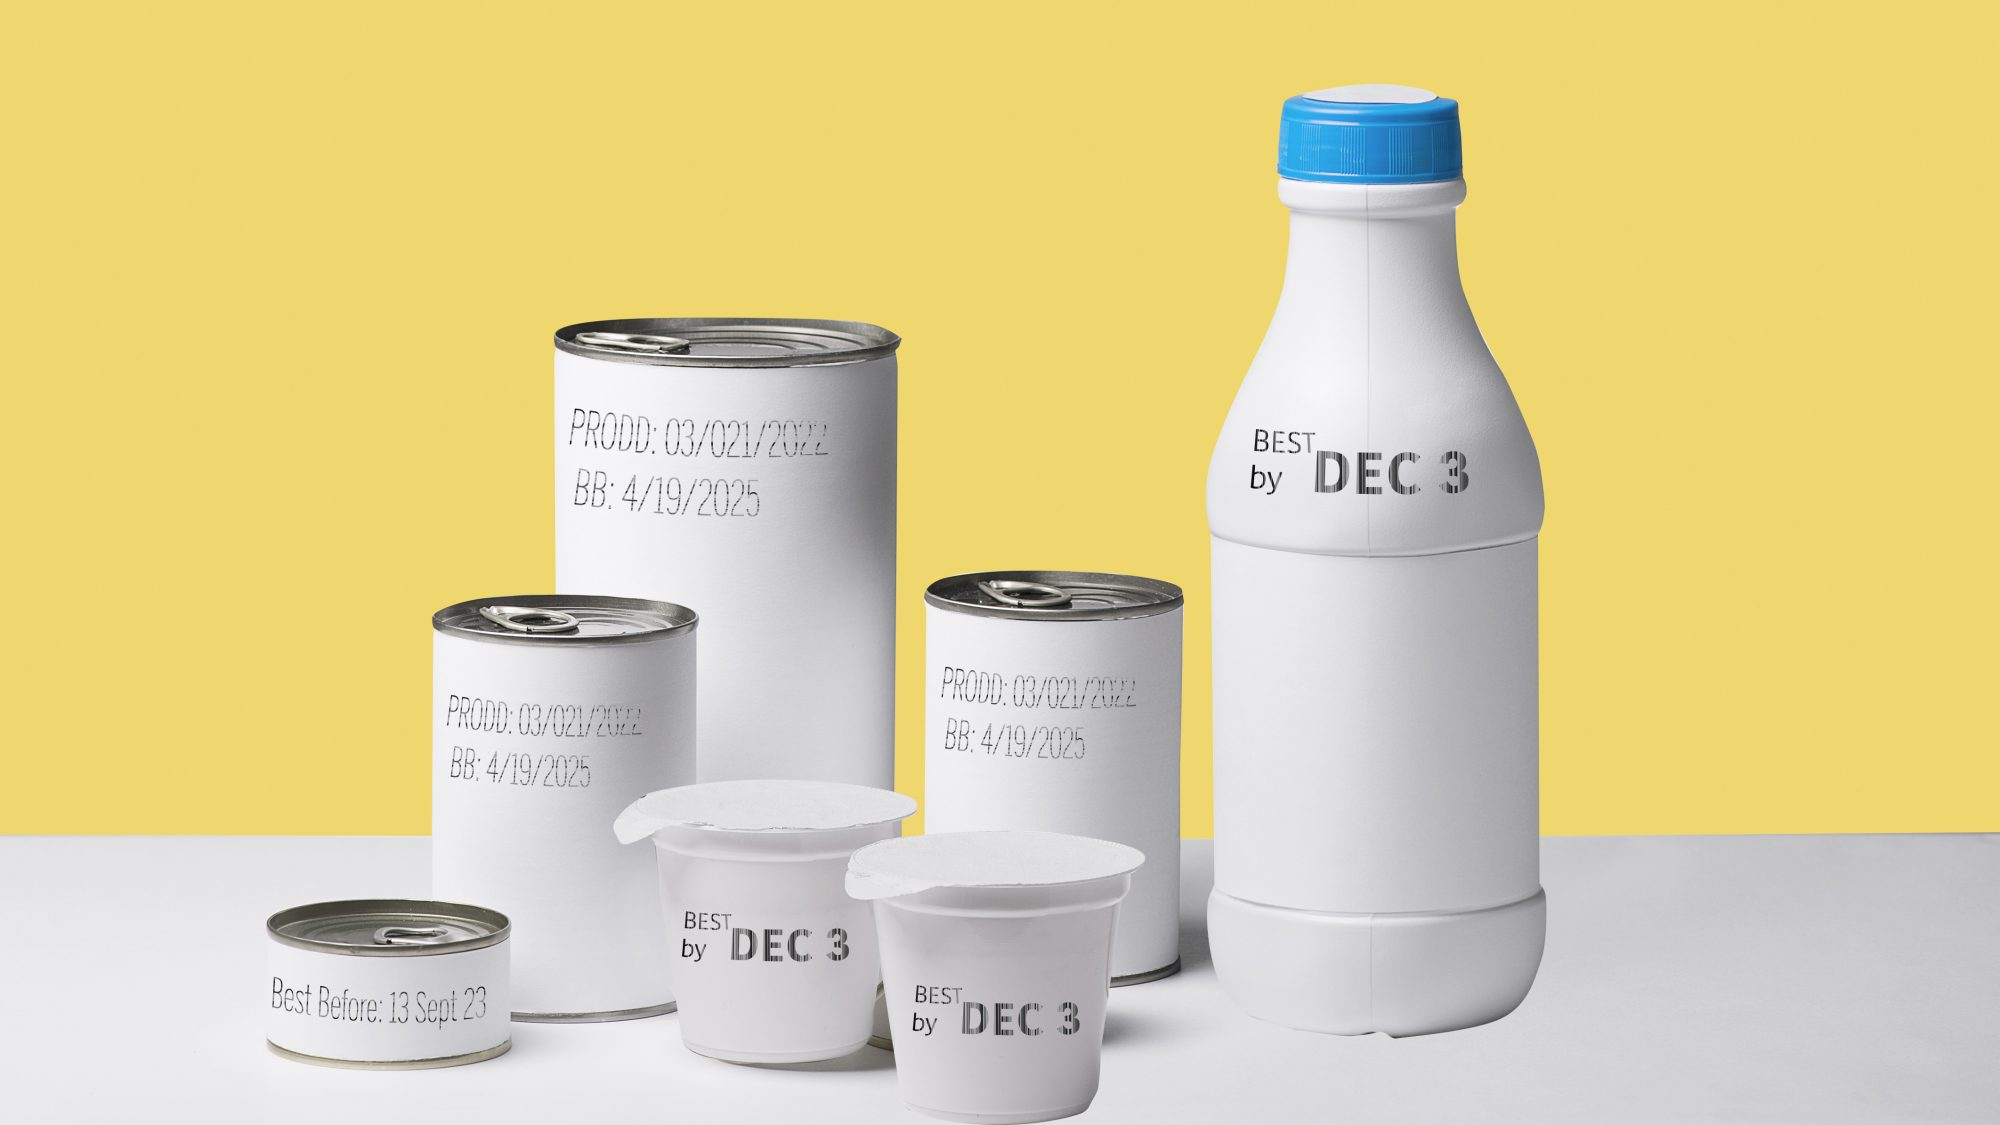 food-expiration-date-guidelines: cans and bottles with expiration dates visible